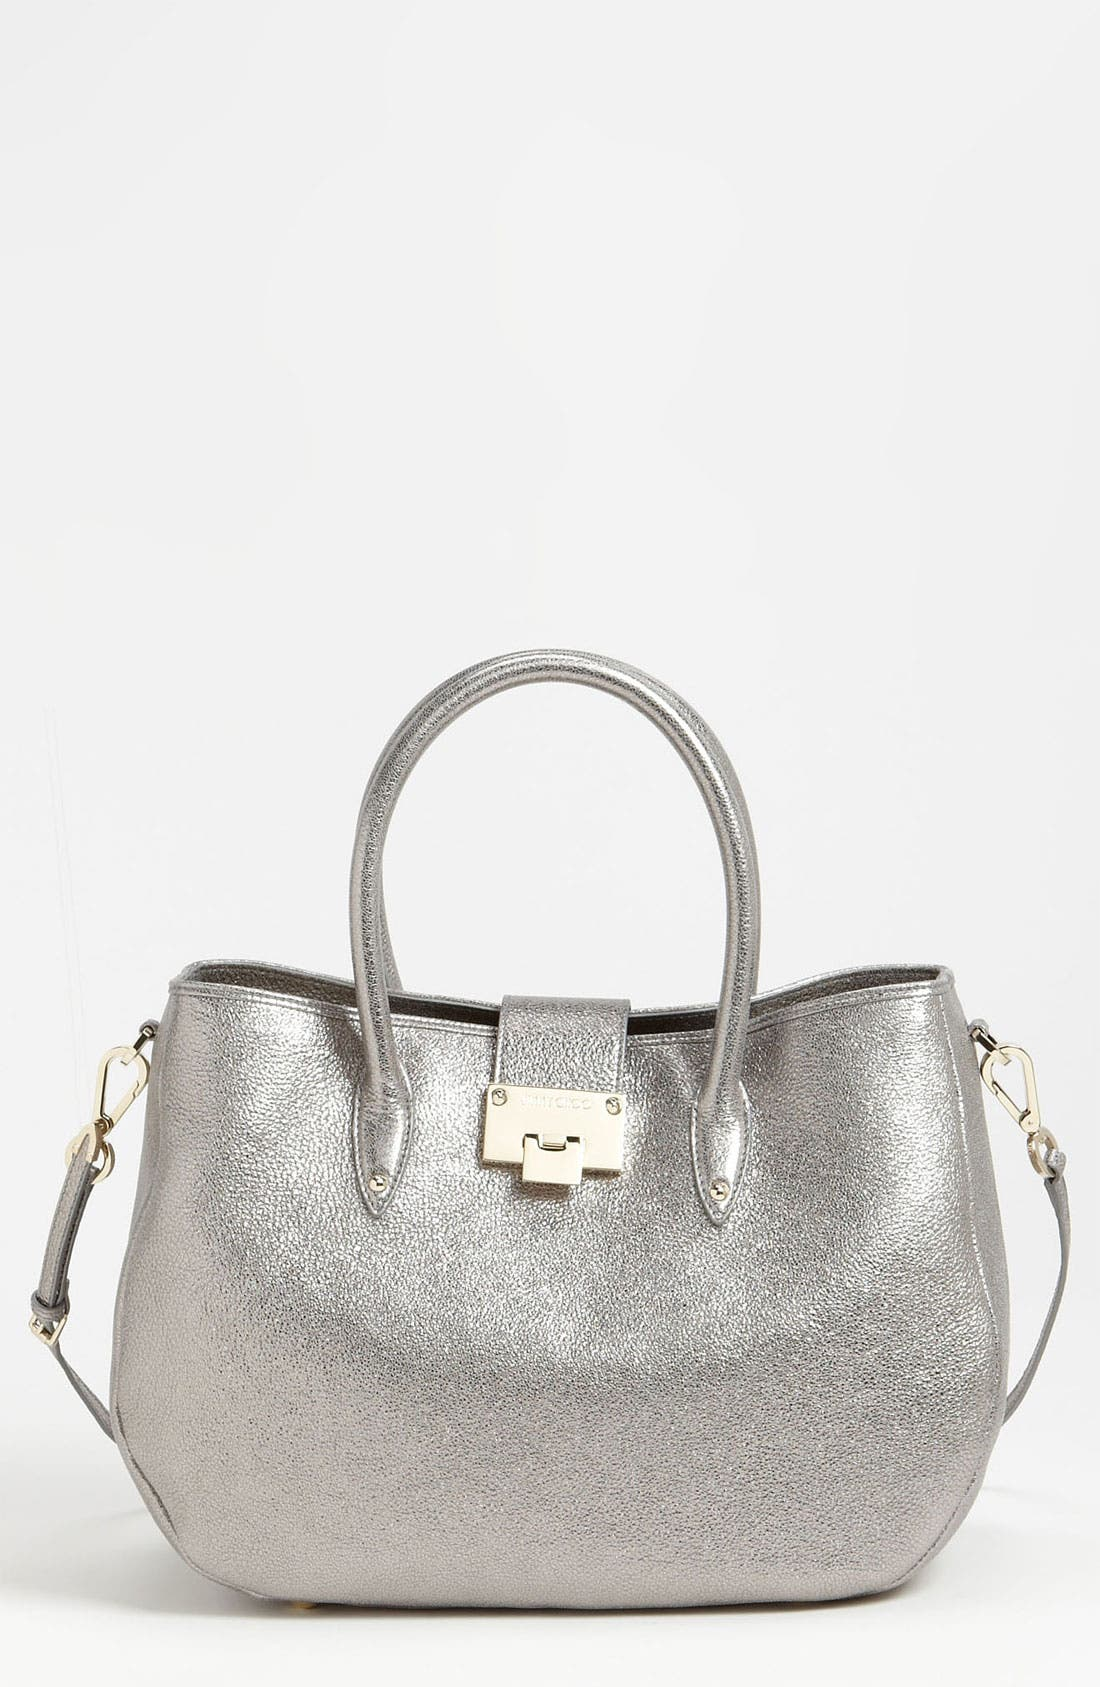 Alternate Image 1 Selected - Jimmy Choo 'Rania' Glitter Leather Satchel